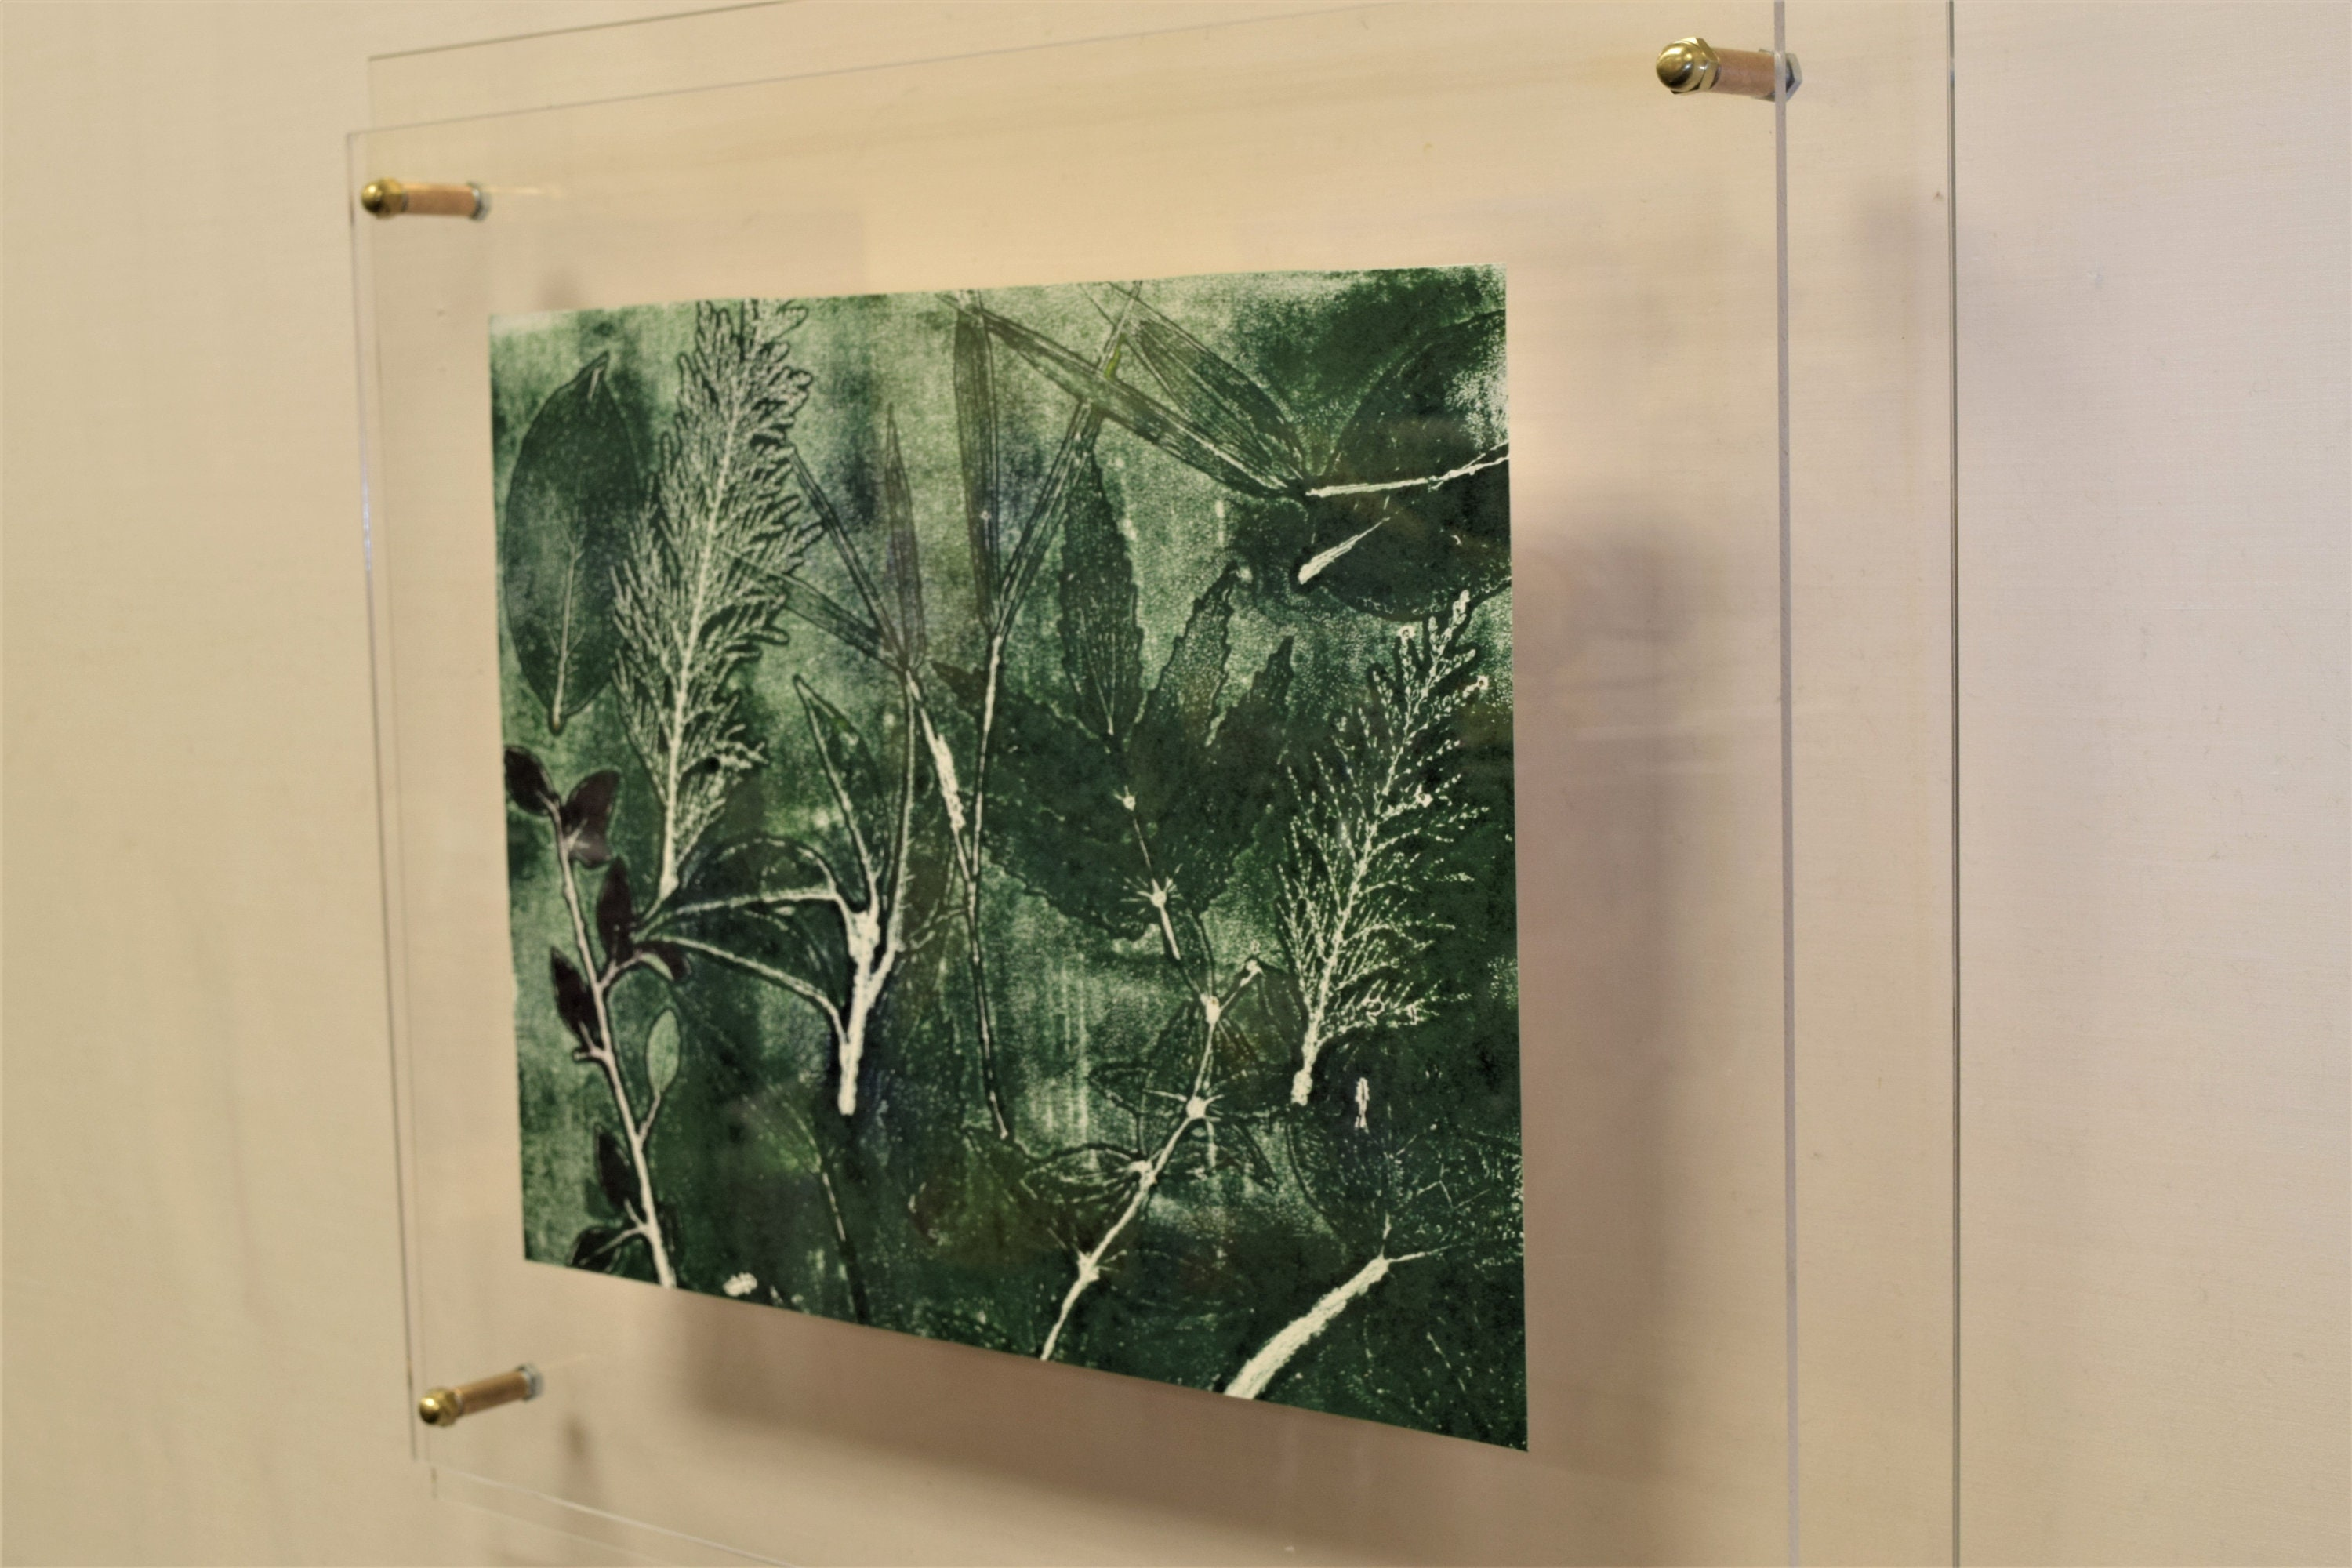 ACRYLIC Frame 16x20 DELUXE MEDIUM 23x27 to Fit Art 16x20 Floater ...